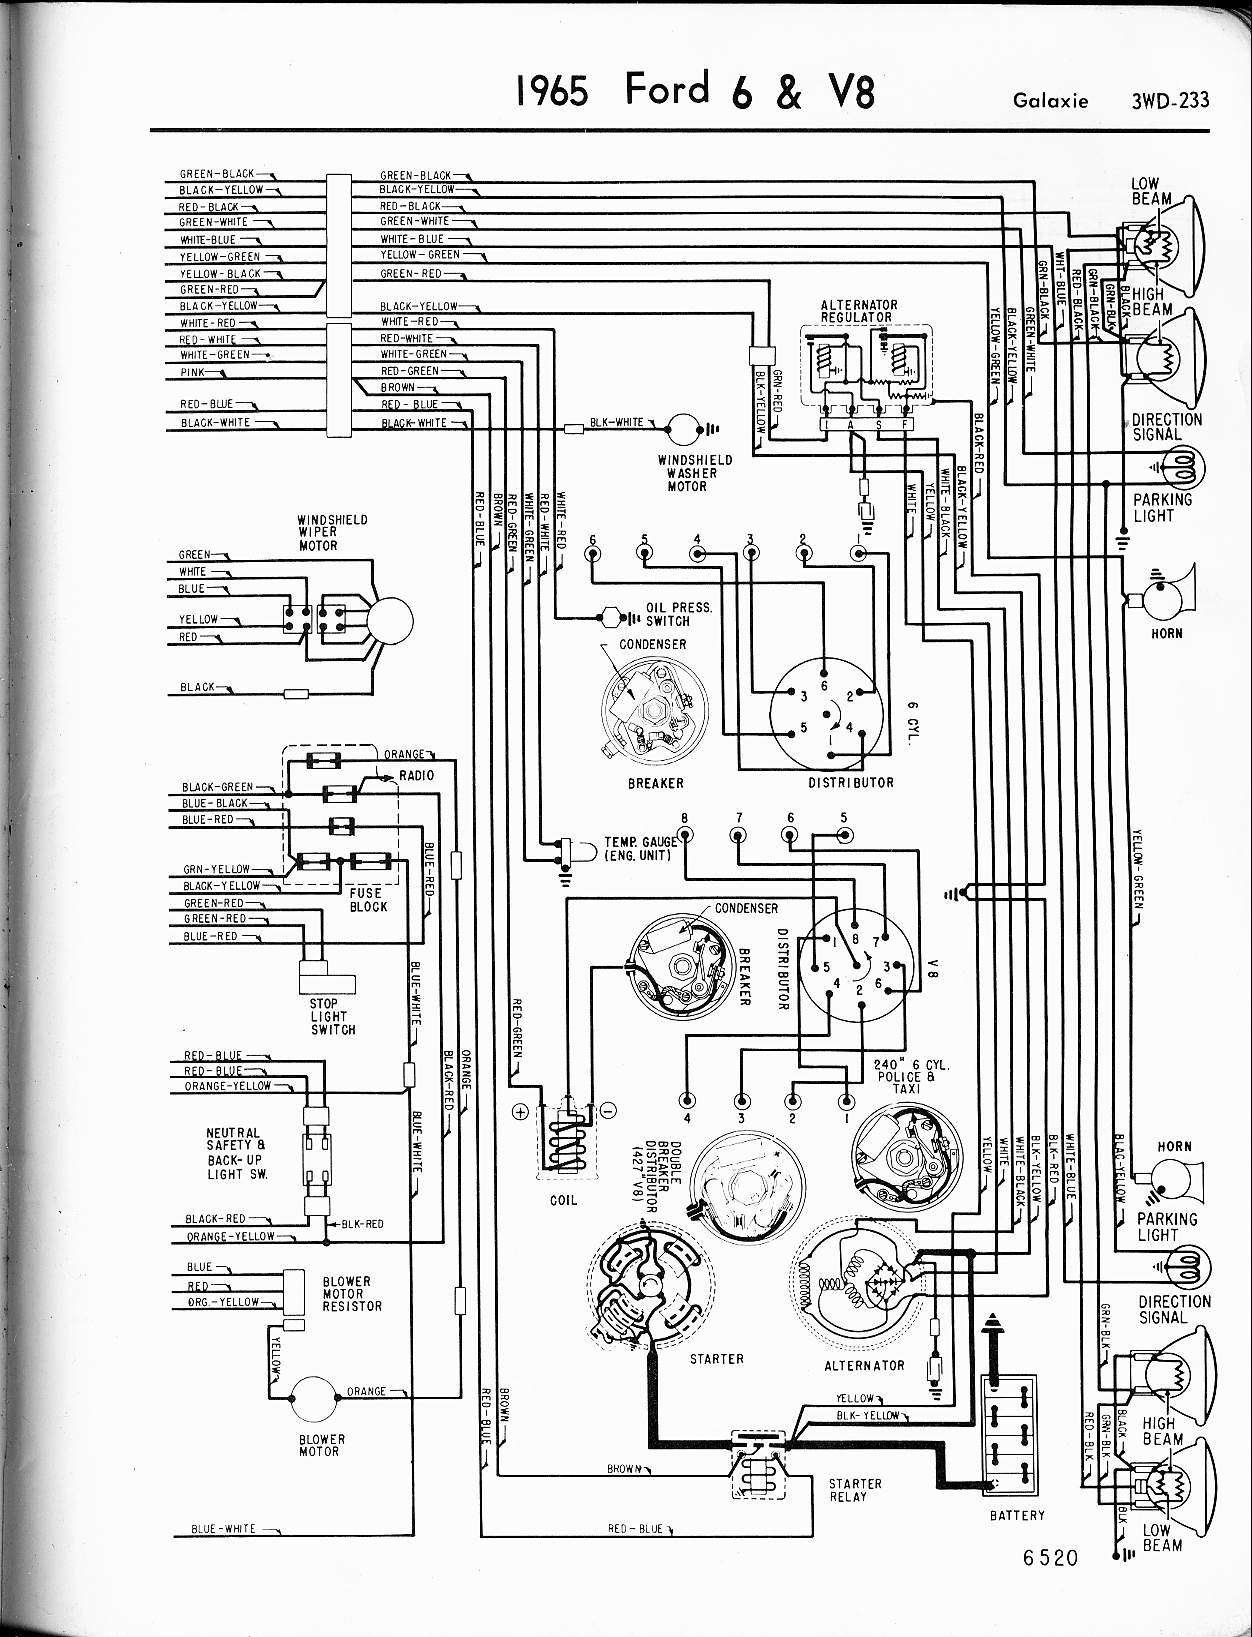 ford wiring schematic ford wiring diagrams wiring diagram for ford rh  xieziy tripa co 1965 ford mustang headlight wiring diagram 1965 mustang wiring  diagram